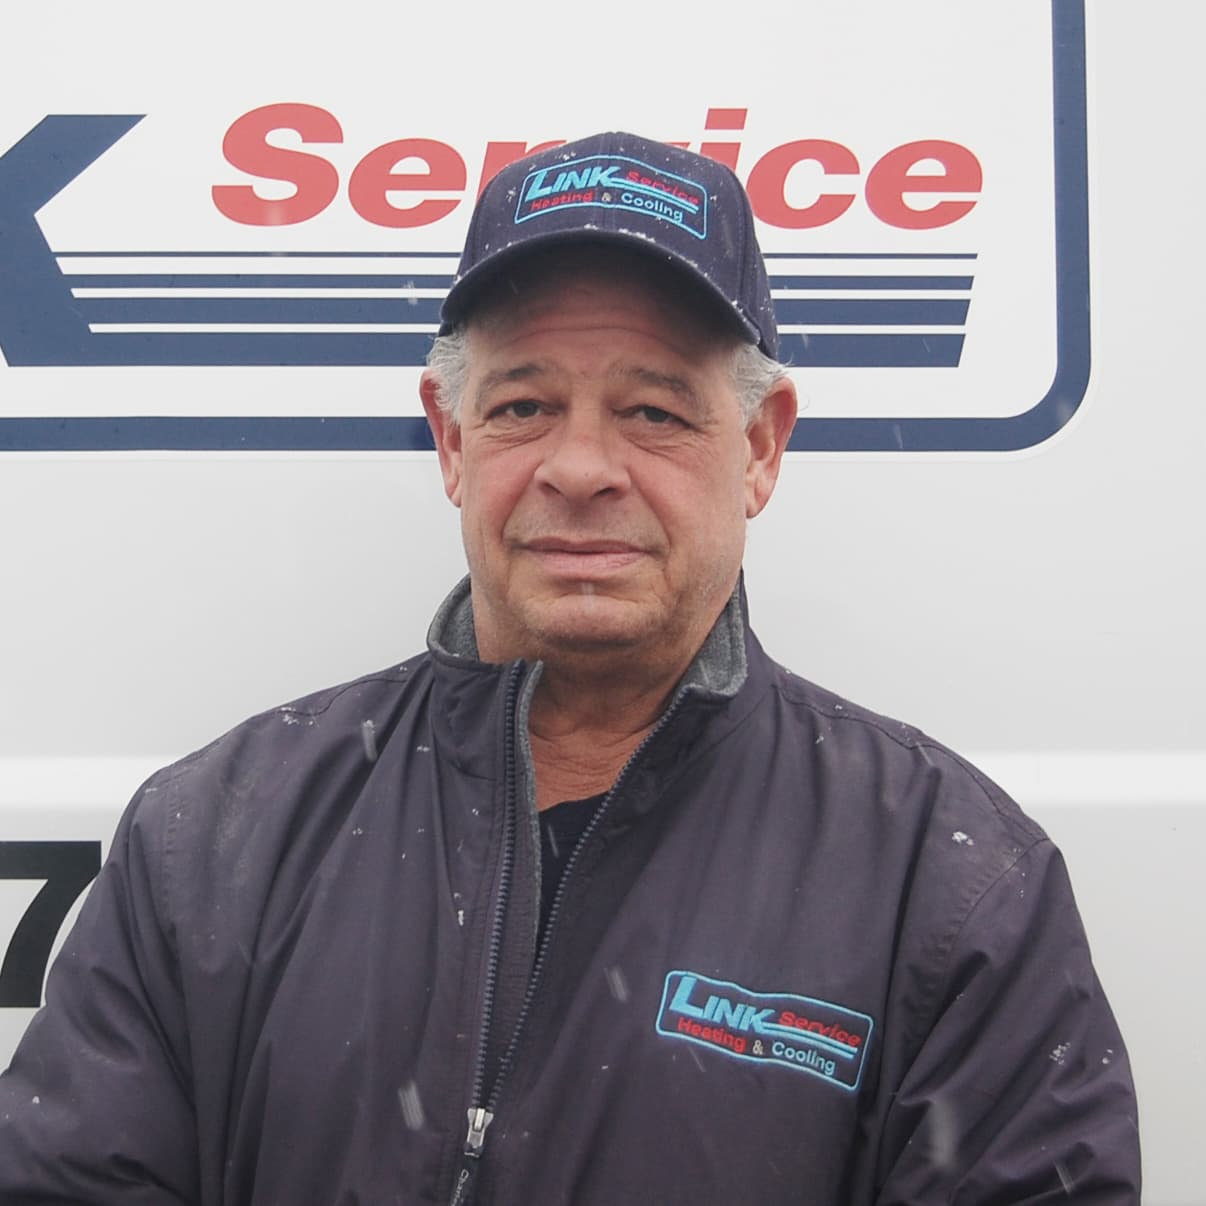 Mark N. of Link Service Heating & Cooling.